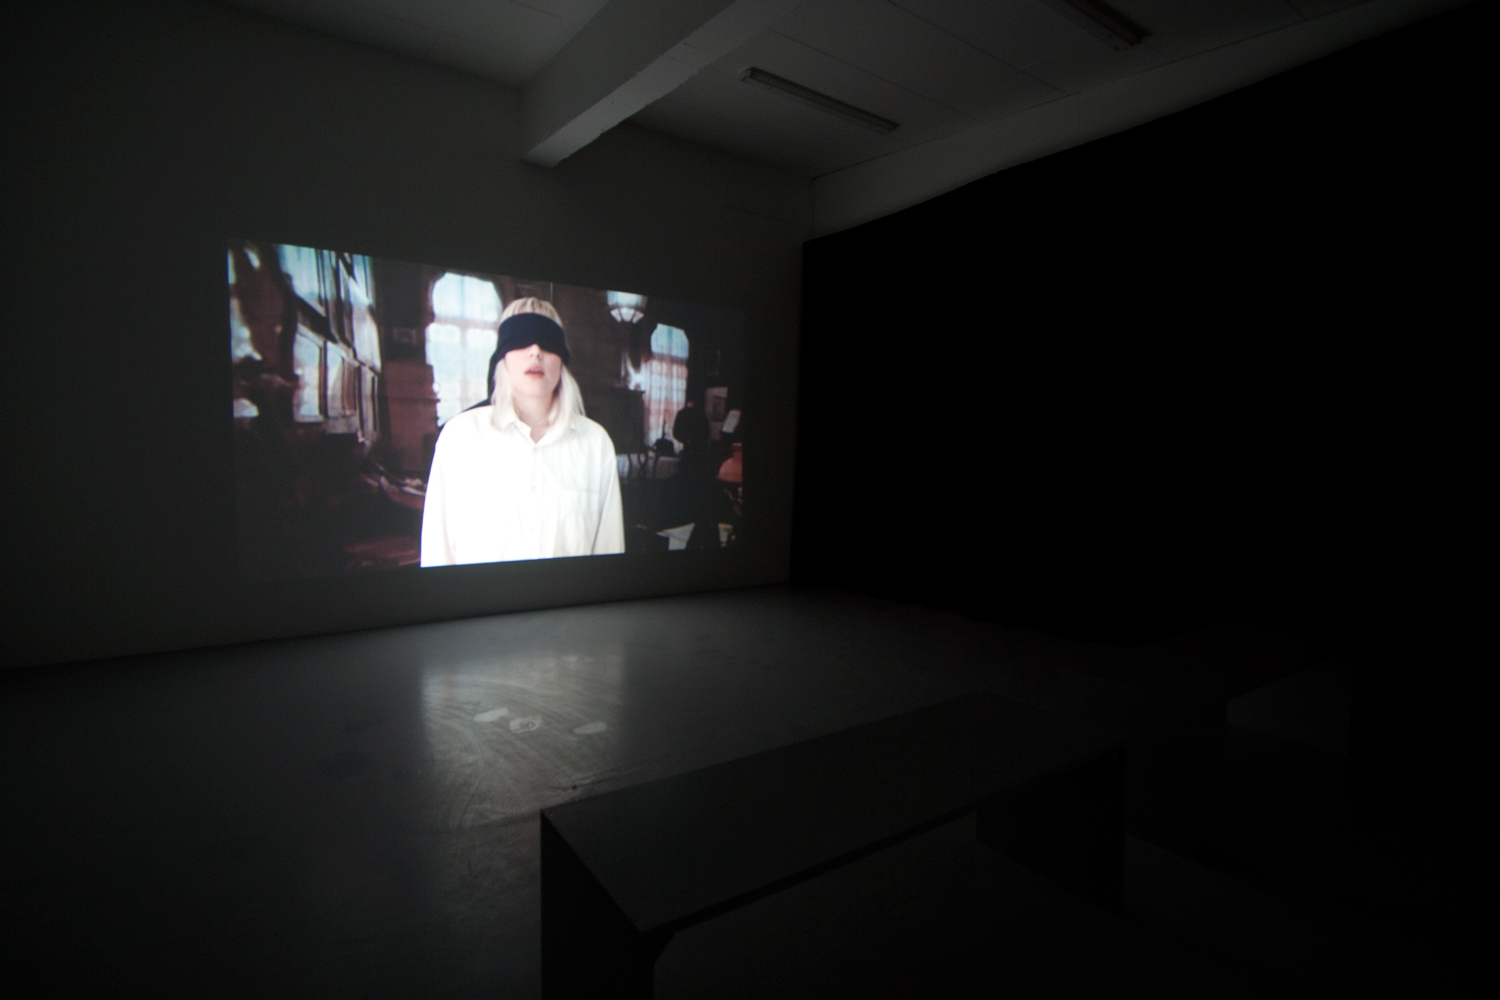 Installation view (back room), KHM Gallery, Malmö, 2011